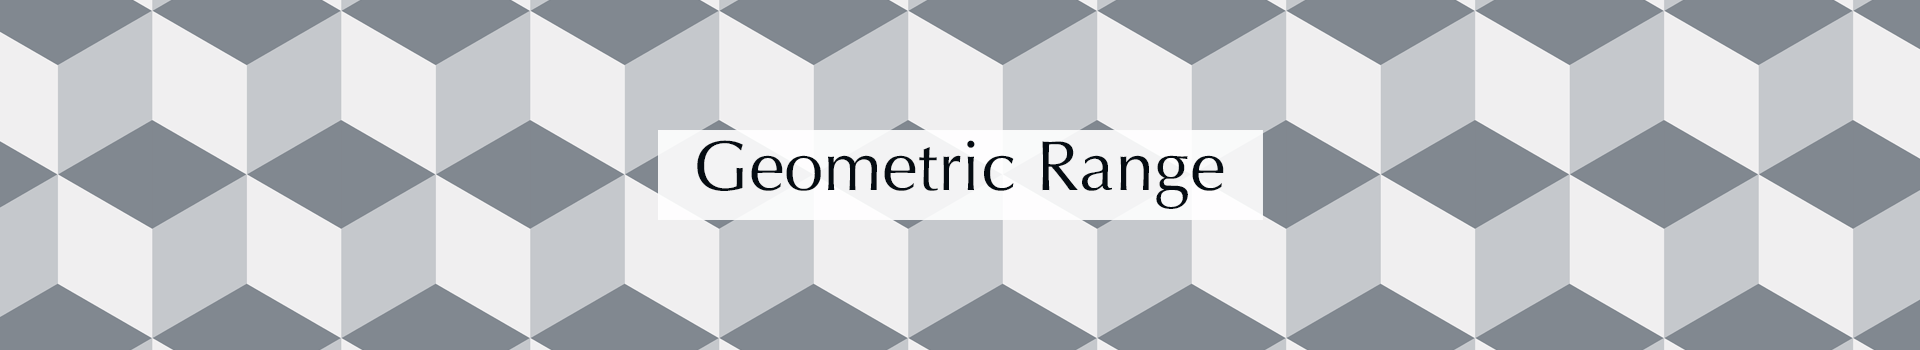 geometric-range-category-banner-celina-digby.png